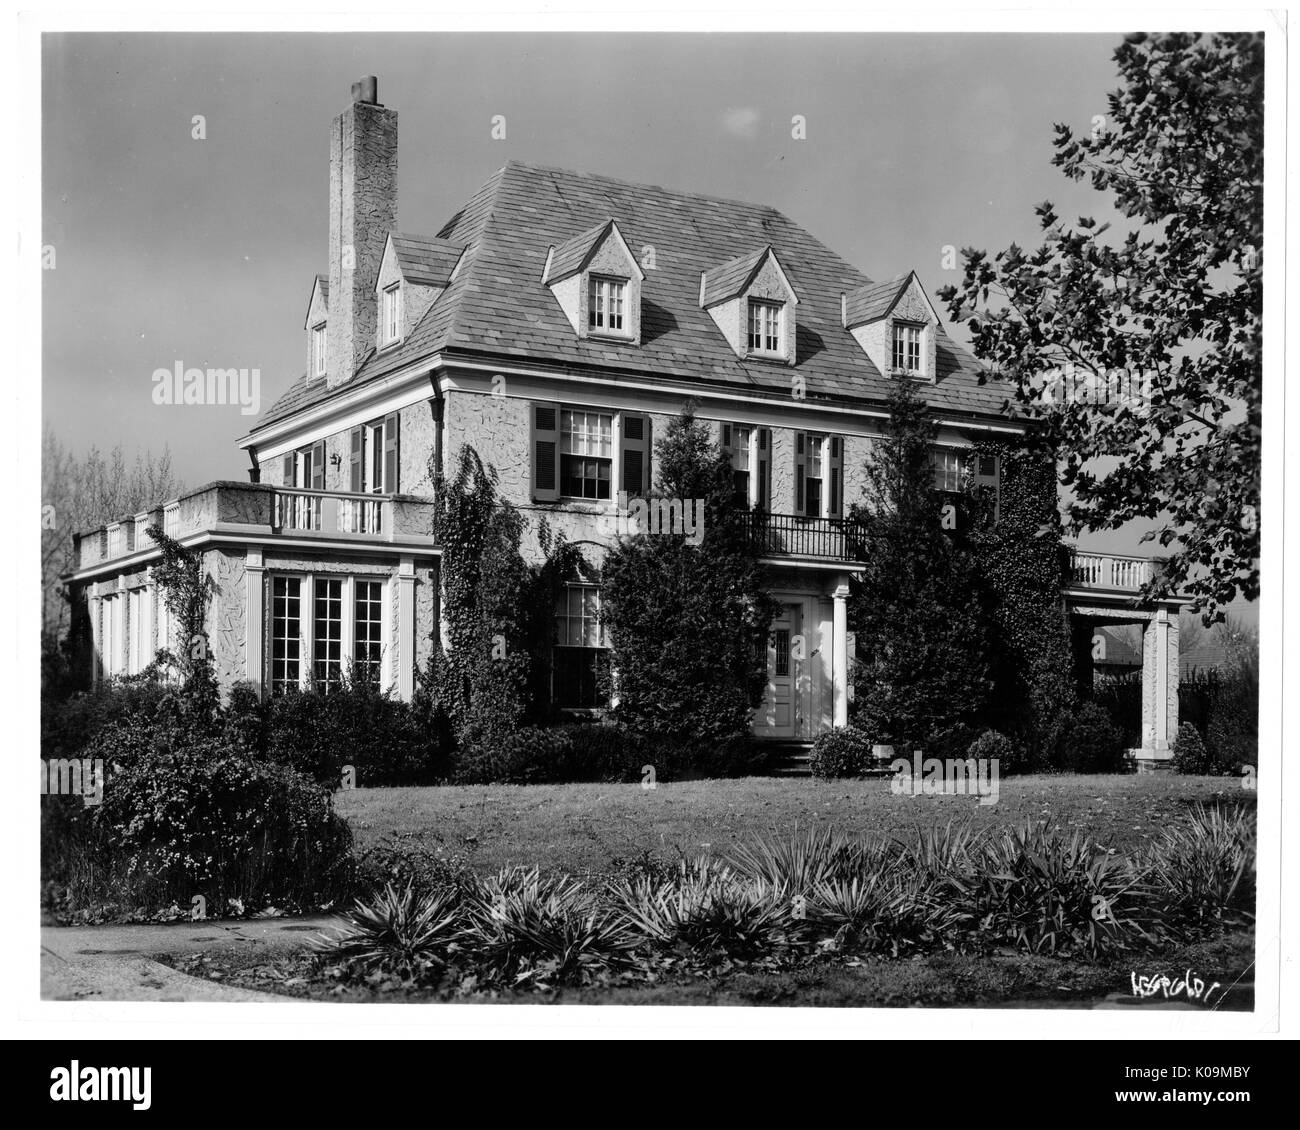 Landscape shot of a large three story house with a chimney, balconies on each side with well kept landscaping surrounding the house, Roland Park / Guilford, Baltimore, Maryland, 1910. This image is from a series documenting the construction and sale of homes in the Roland Park/Guilford neighborhood of Baltimore, a streetcar suburb and one of the first planned communities in the United States. The neighborhood was segregated, and is considered an early example of the enforcement of racial segregation through the use of restricted covenants. - Stock Image